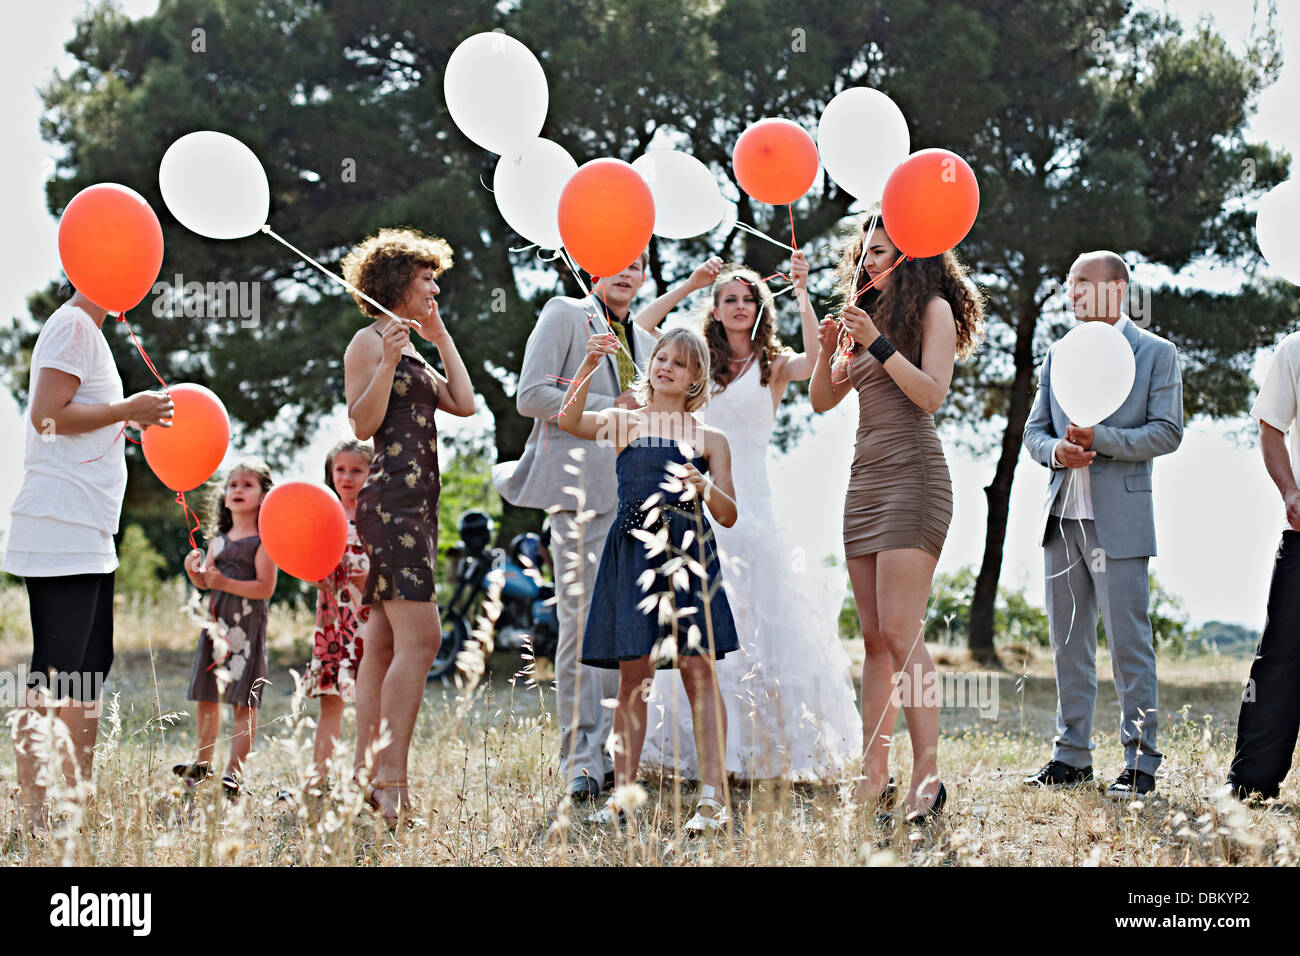 Wedding Guests With Balloons, Croatia, Dalmatia Stock Photo